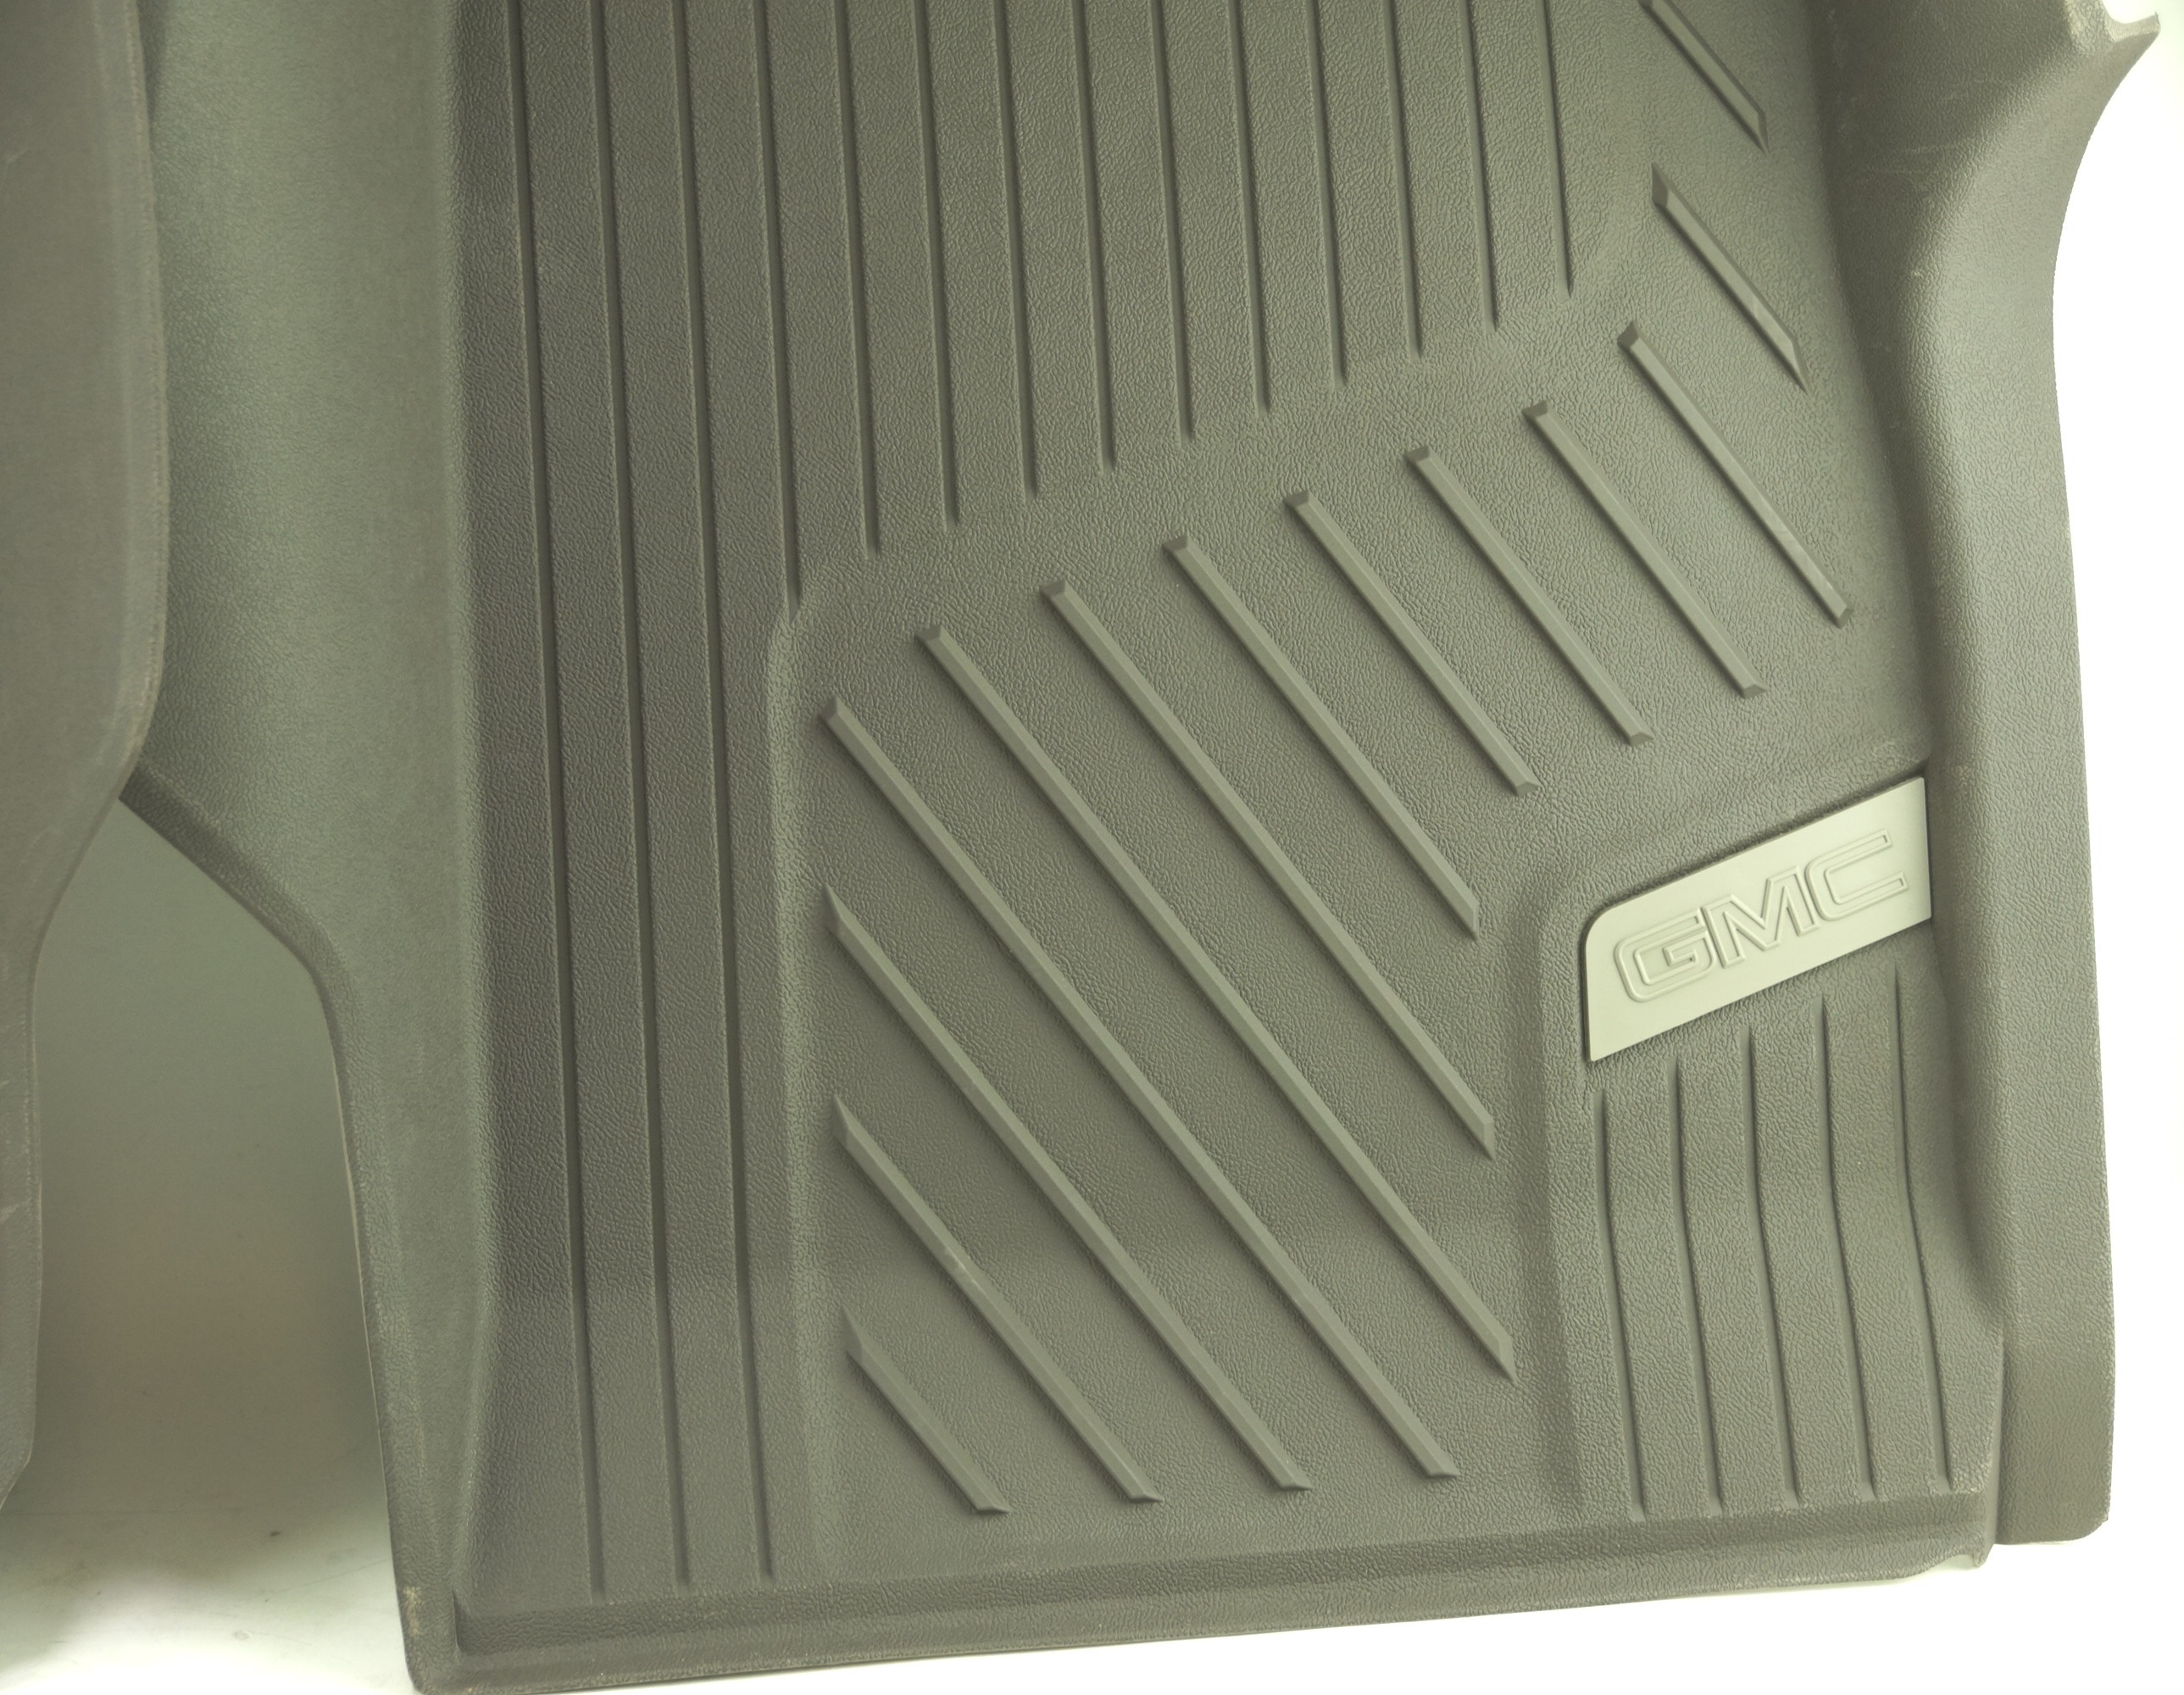 New OEM 84370641 Genuine GM Front Floor Liners All-Weather 15-20 GMC Canyon - image 9